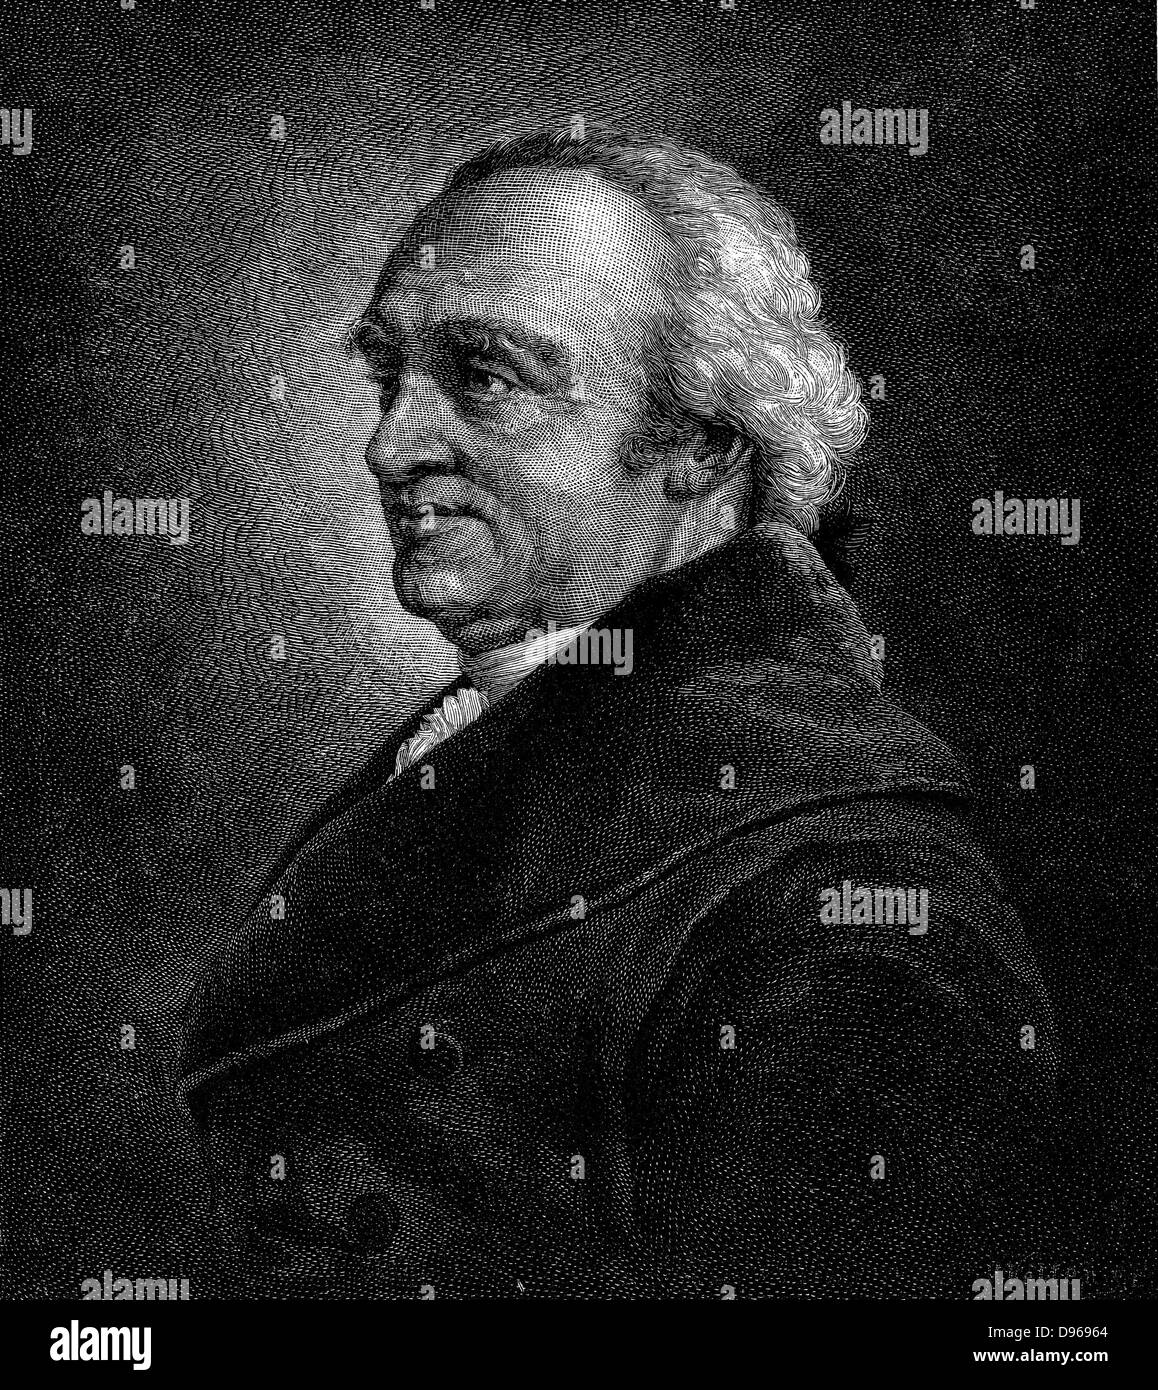 William Herschel (1738-1822) German-born English astronomer: Discovered first new planet since ancient times, Uranus. - Stock Image